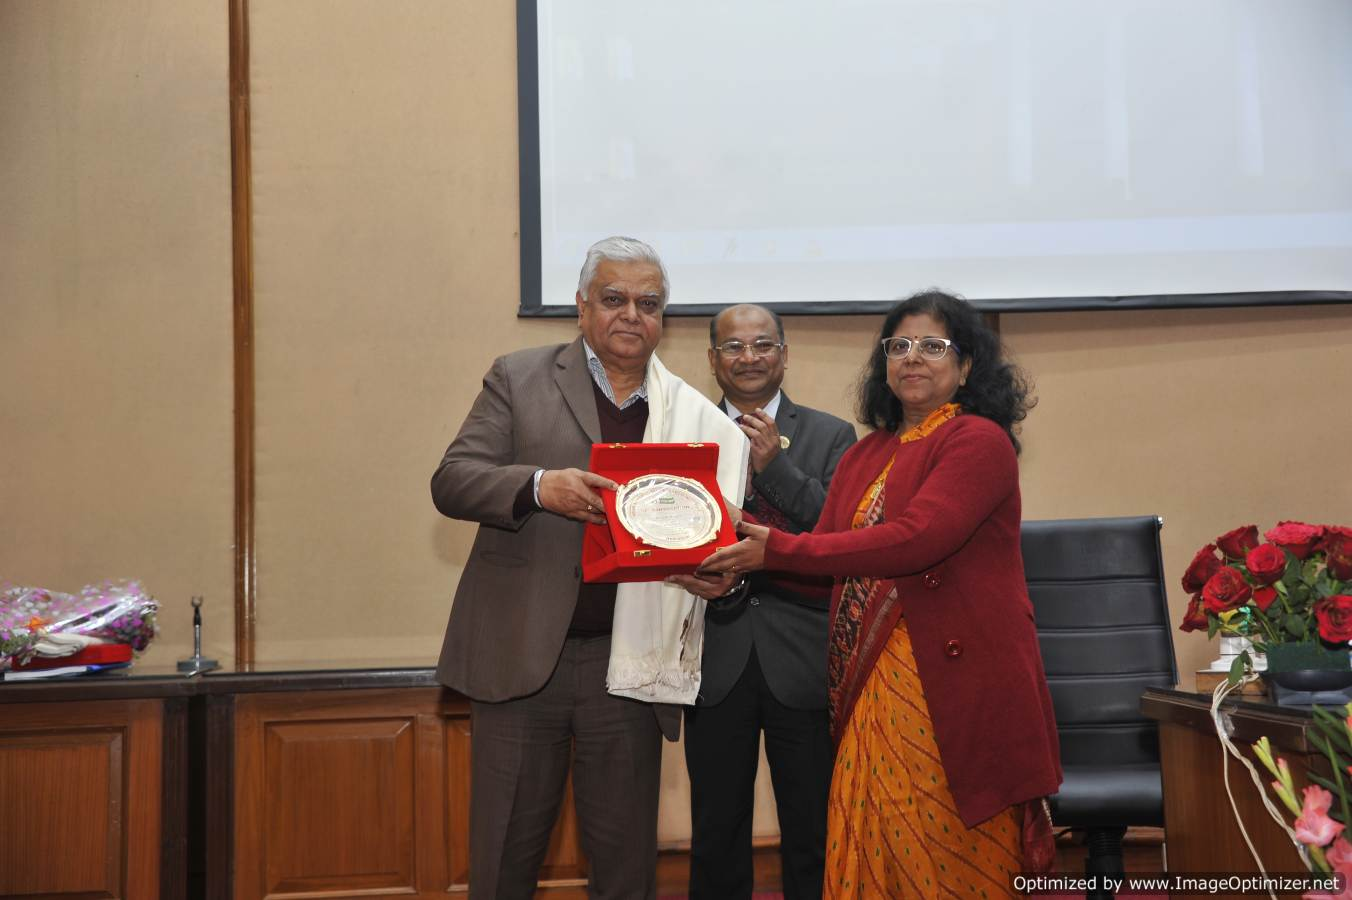 Dr. Rashmi Agrawal, Dean & Joint Director (Edu) presenting a momento to Dr. C. D. Mayee, Former Chairman, ASRB during 57th IARI convocation week on 05.02.19